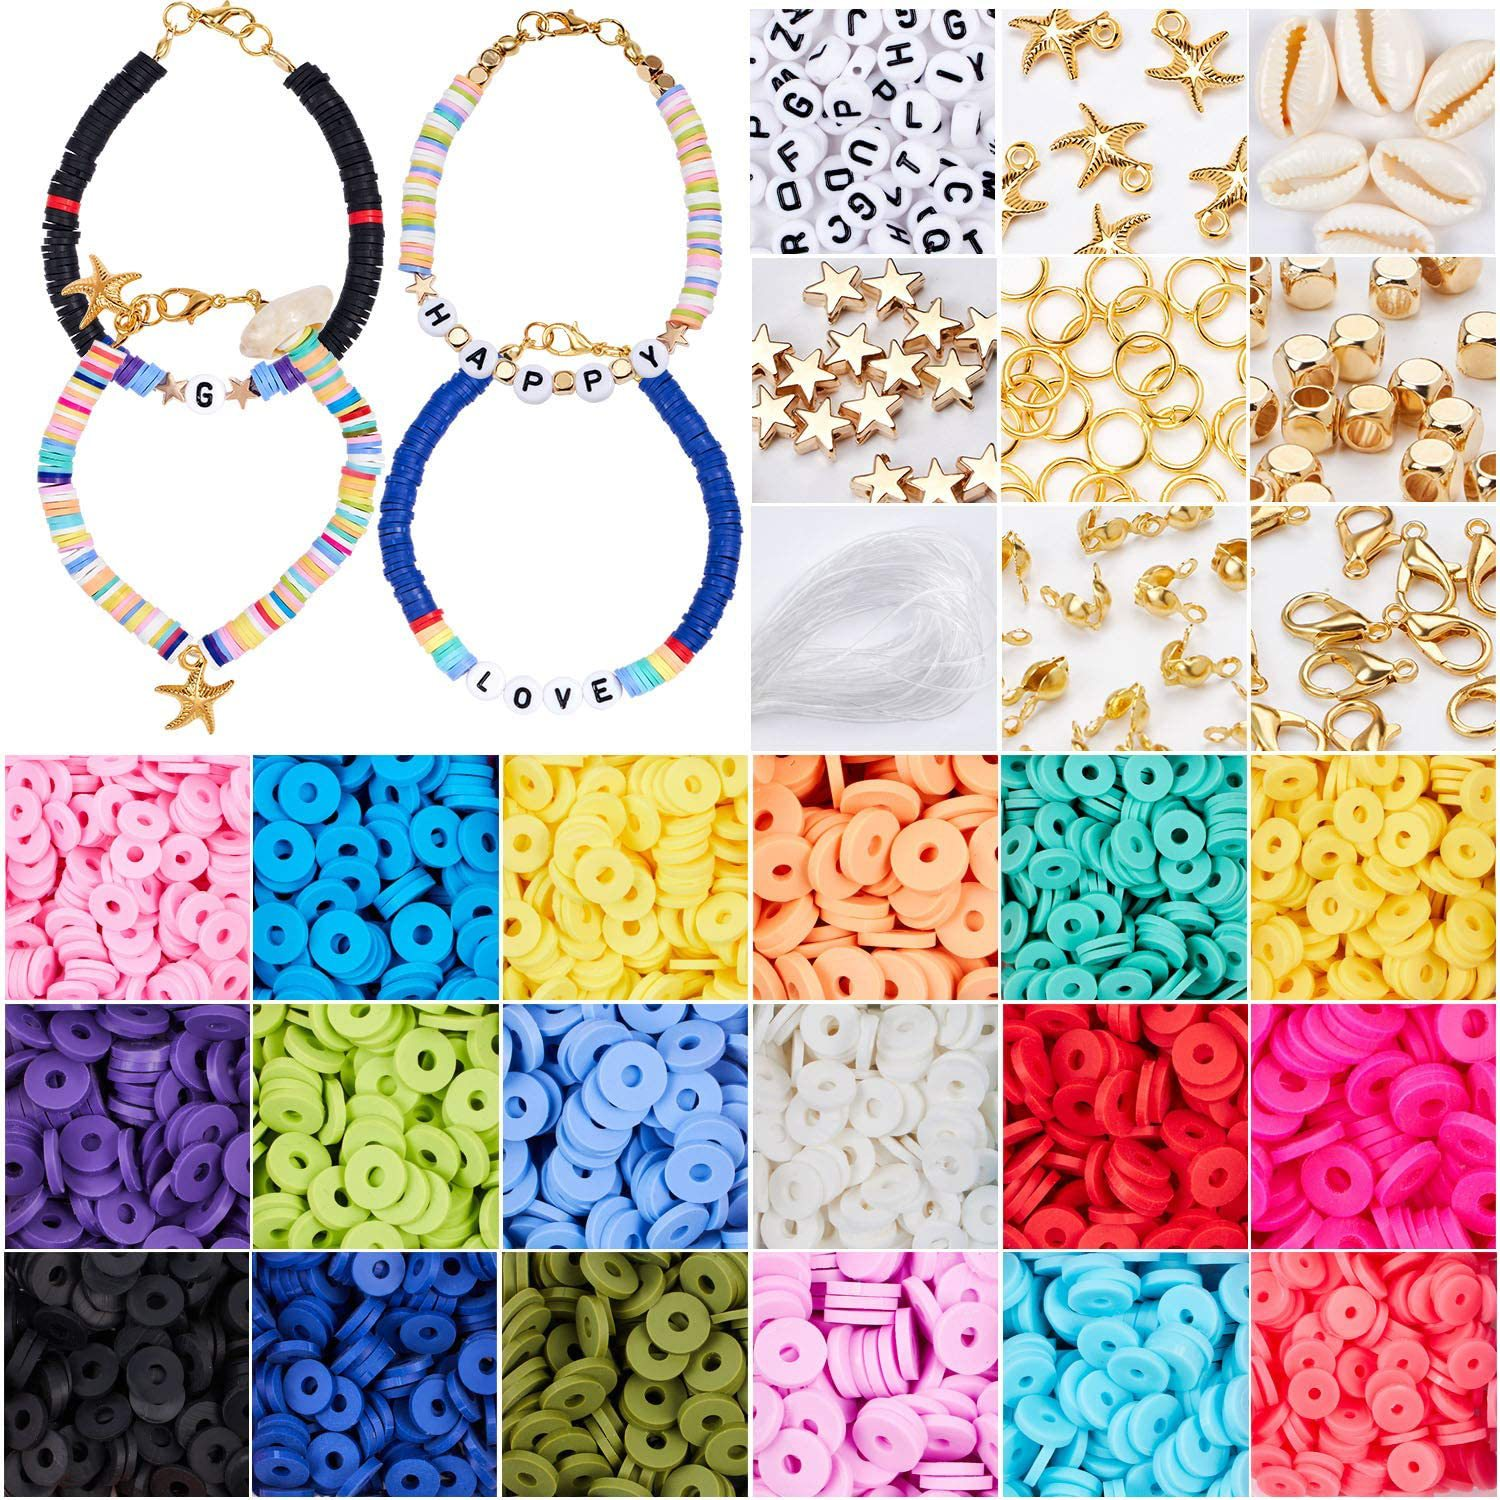 Plastic Boxes Jewelry Findings Tool Accessories Set Polymer 6mm Flat Clay Spacer Bead for Ankle Bracelet Necklace DIY Making Kit